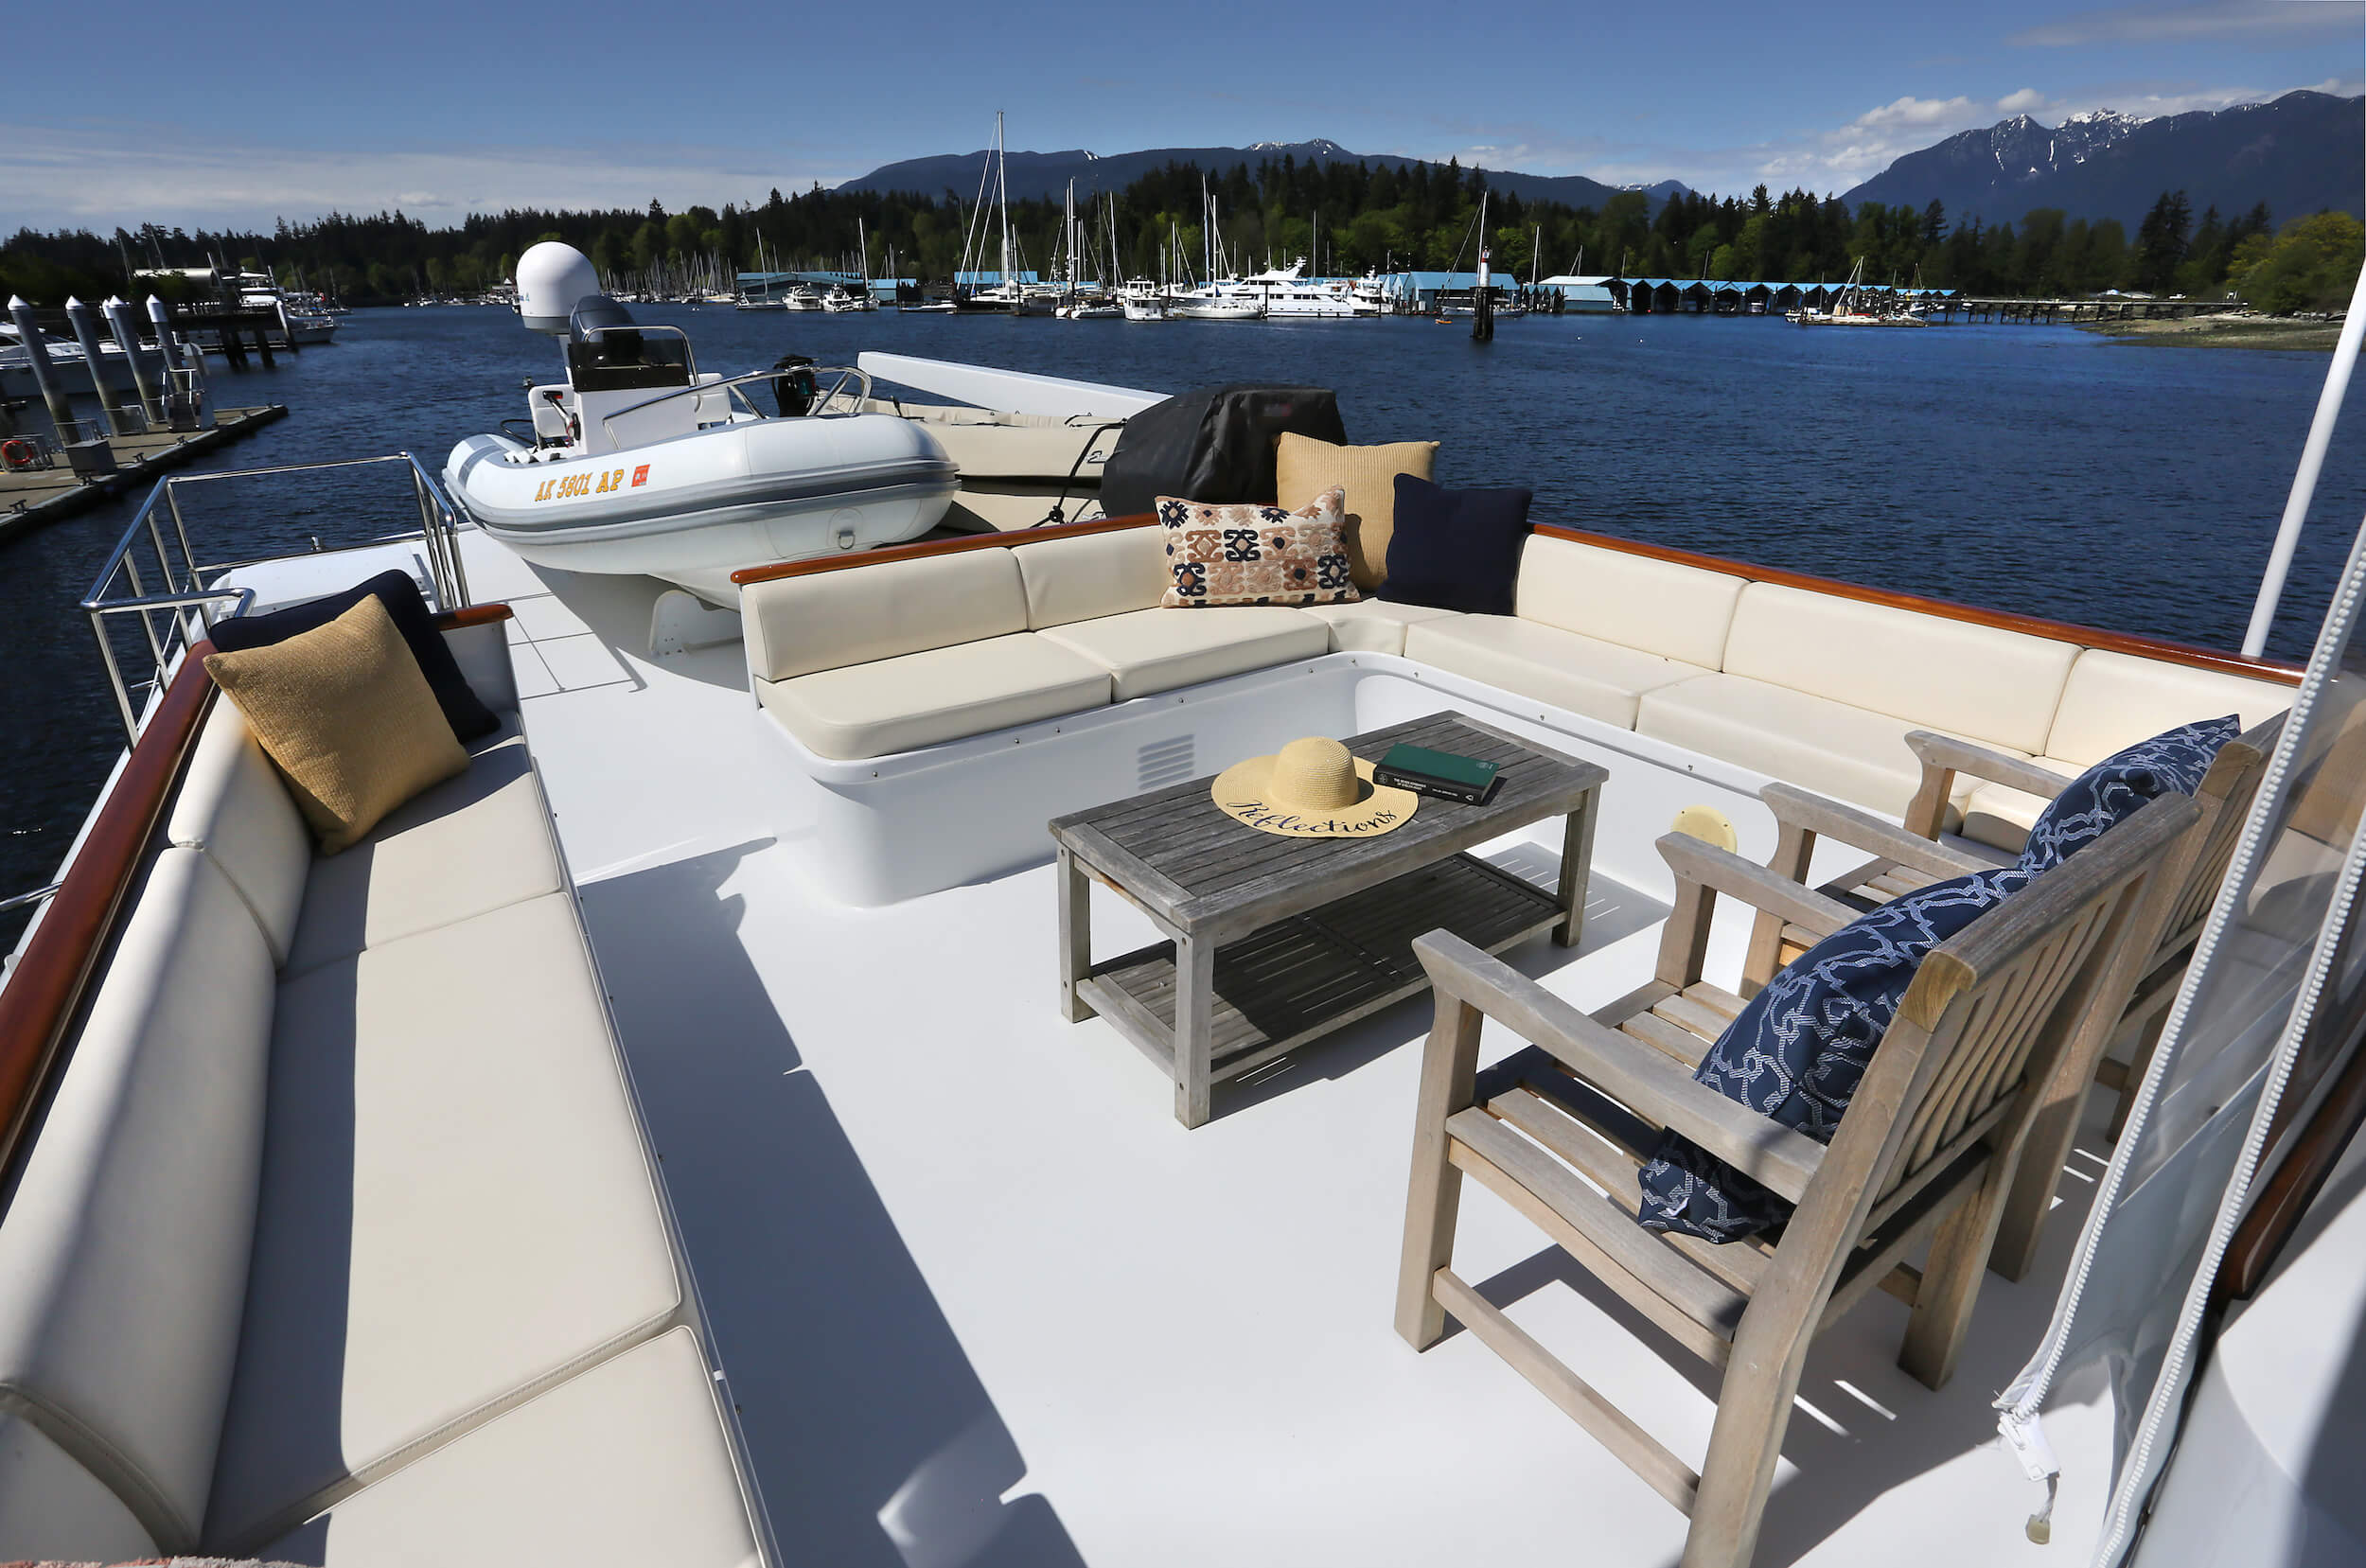 Top Deck - Outside Seating Area